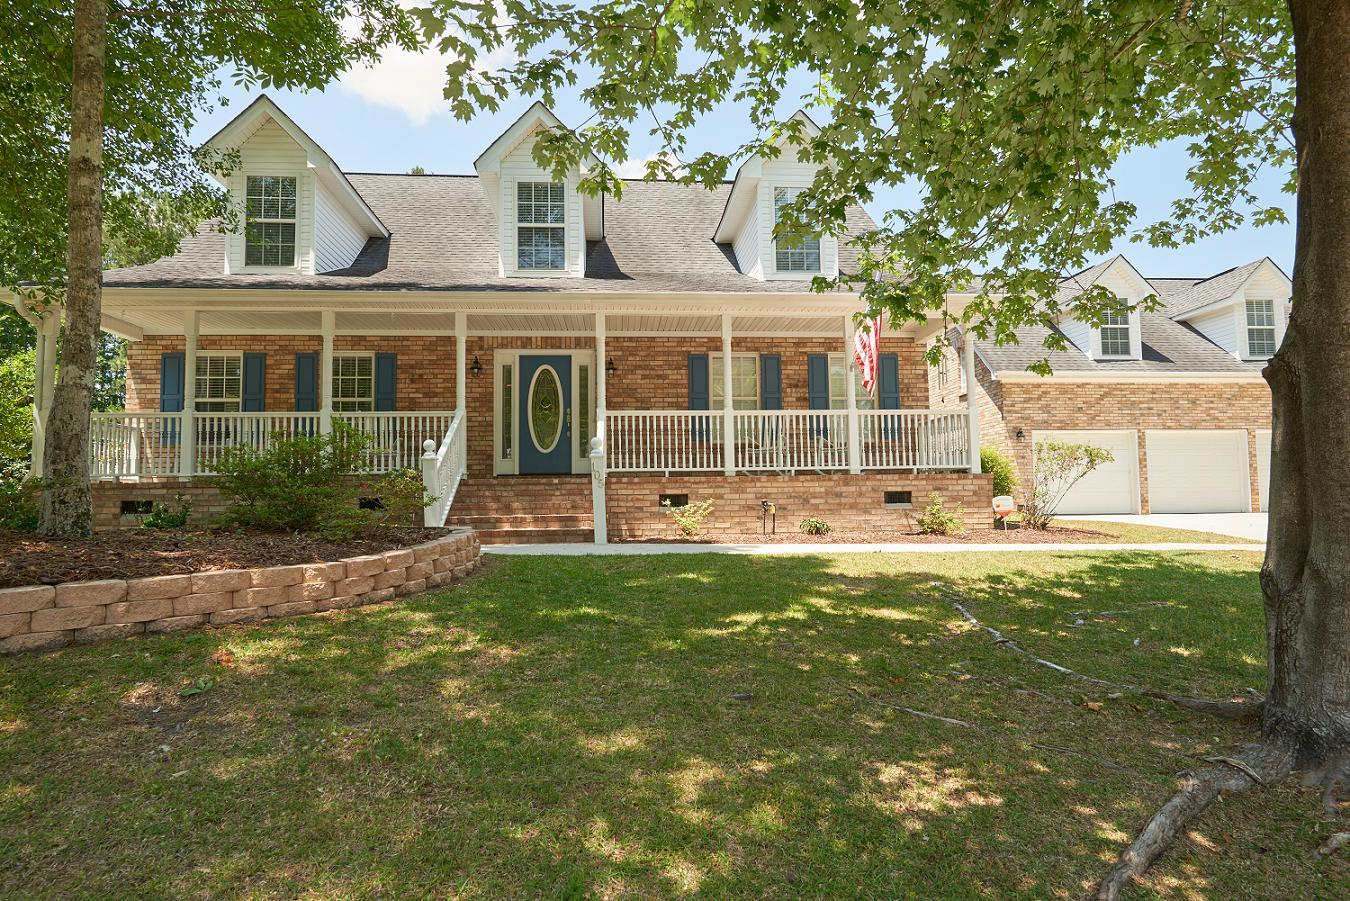 Photo of 105 Melton Ct, Goose Creek, SC 29445